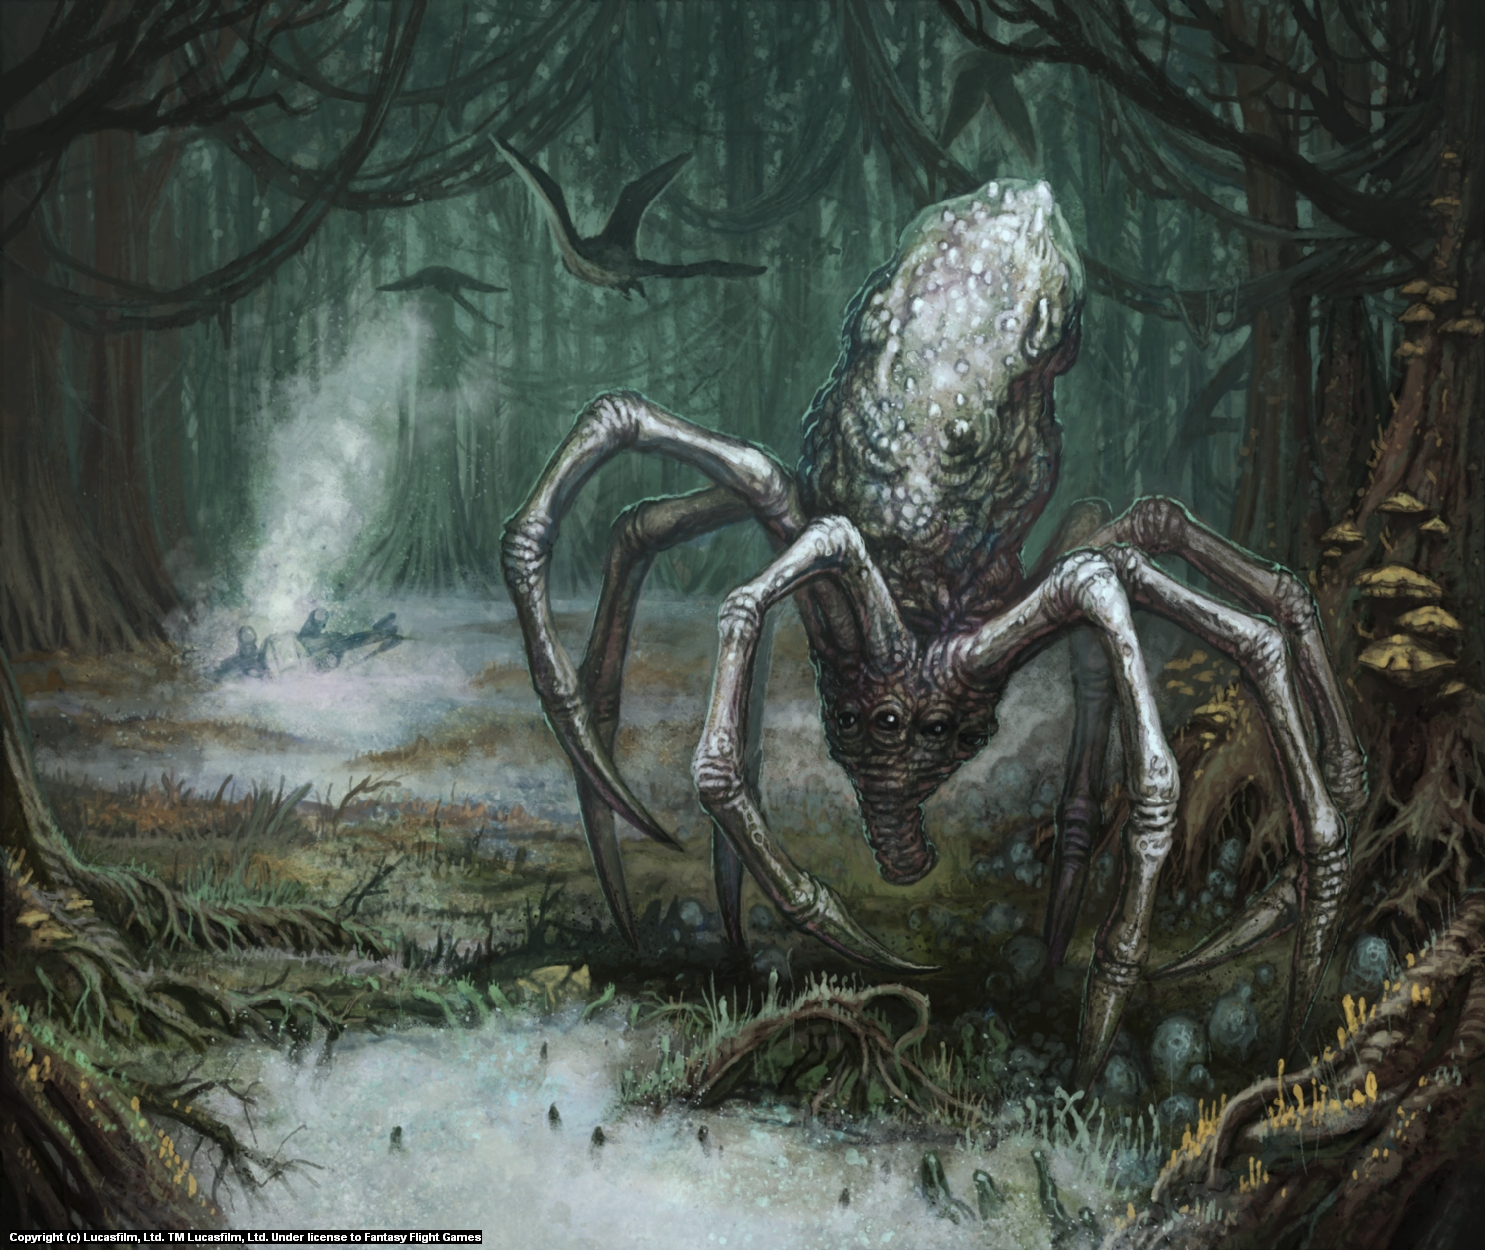 Knobby White Spider Artwork by Christopher Burdett